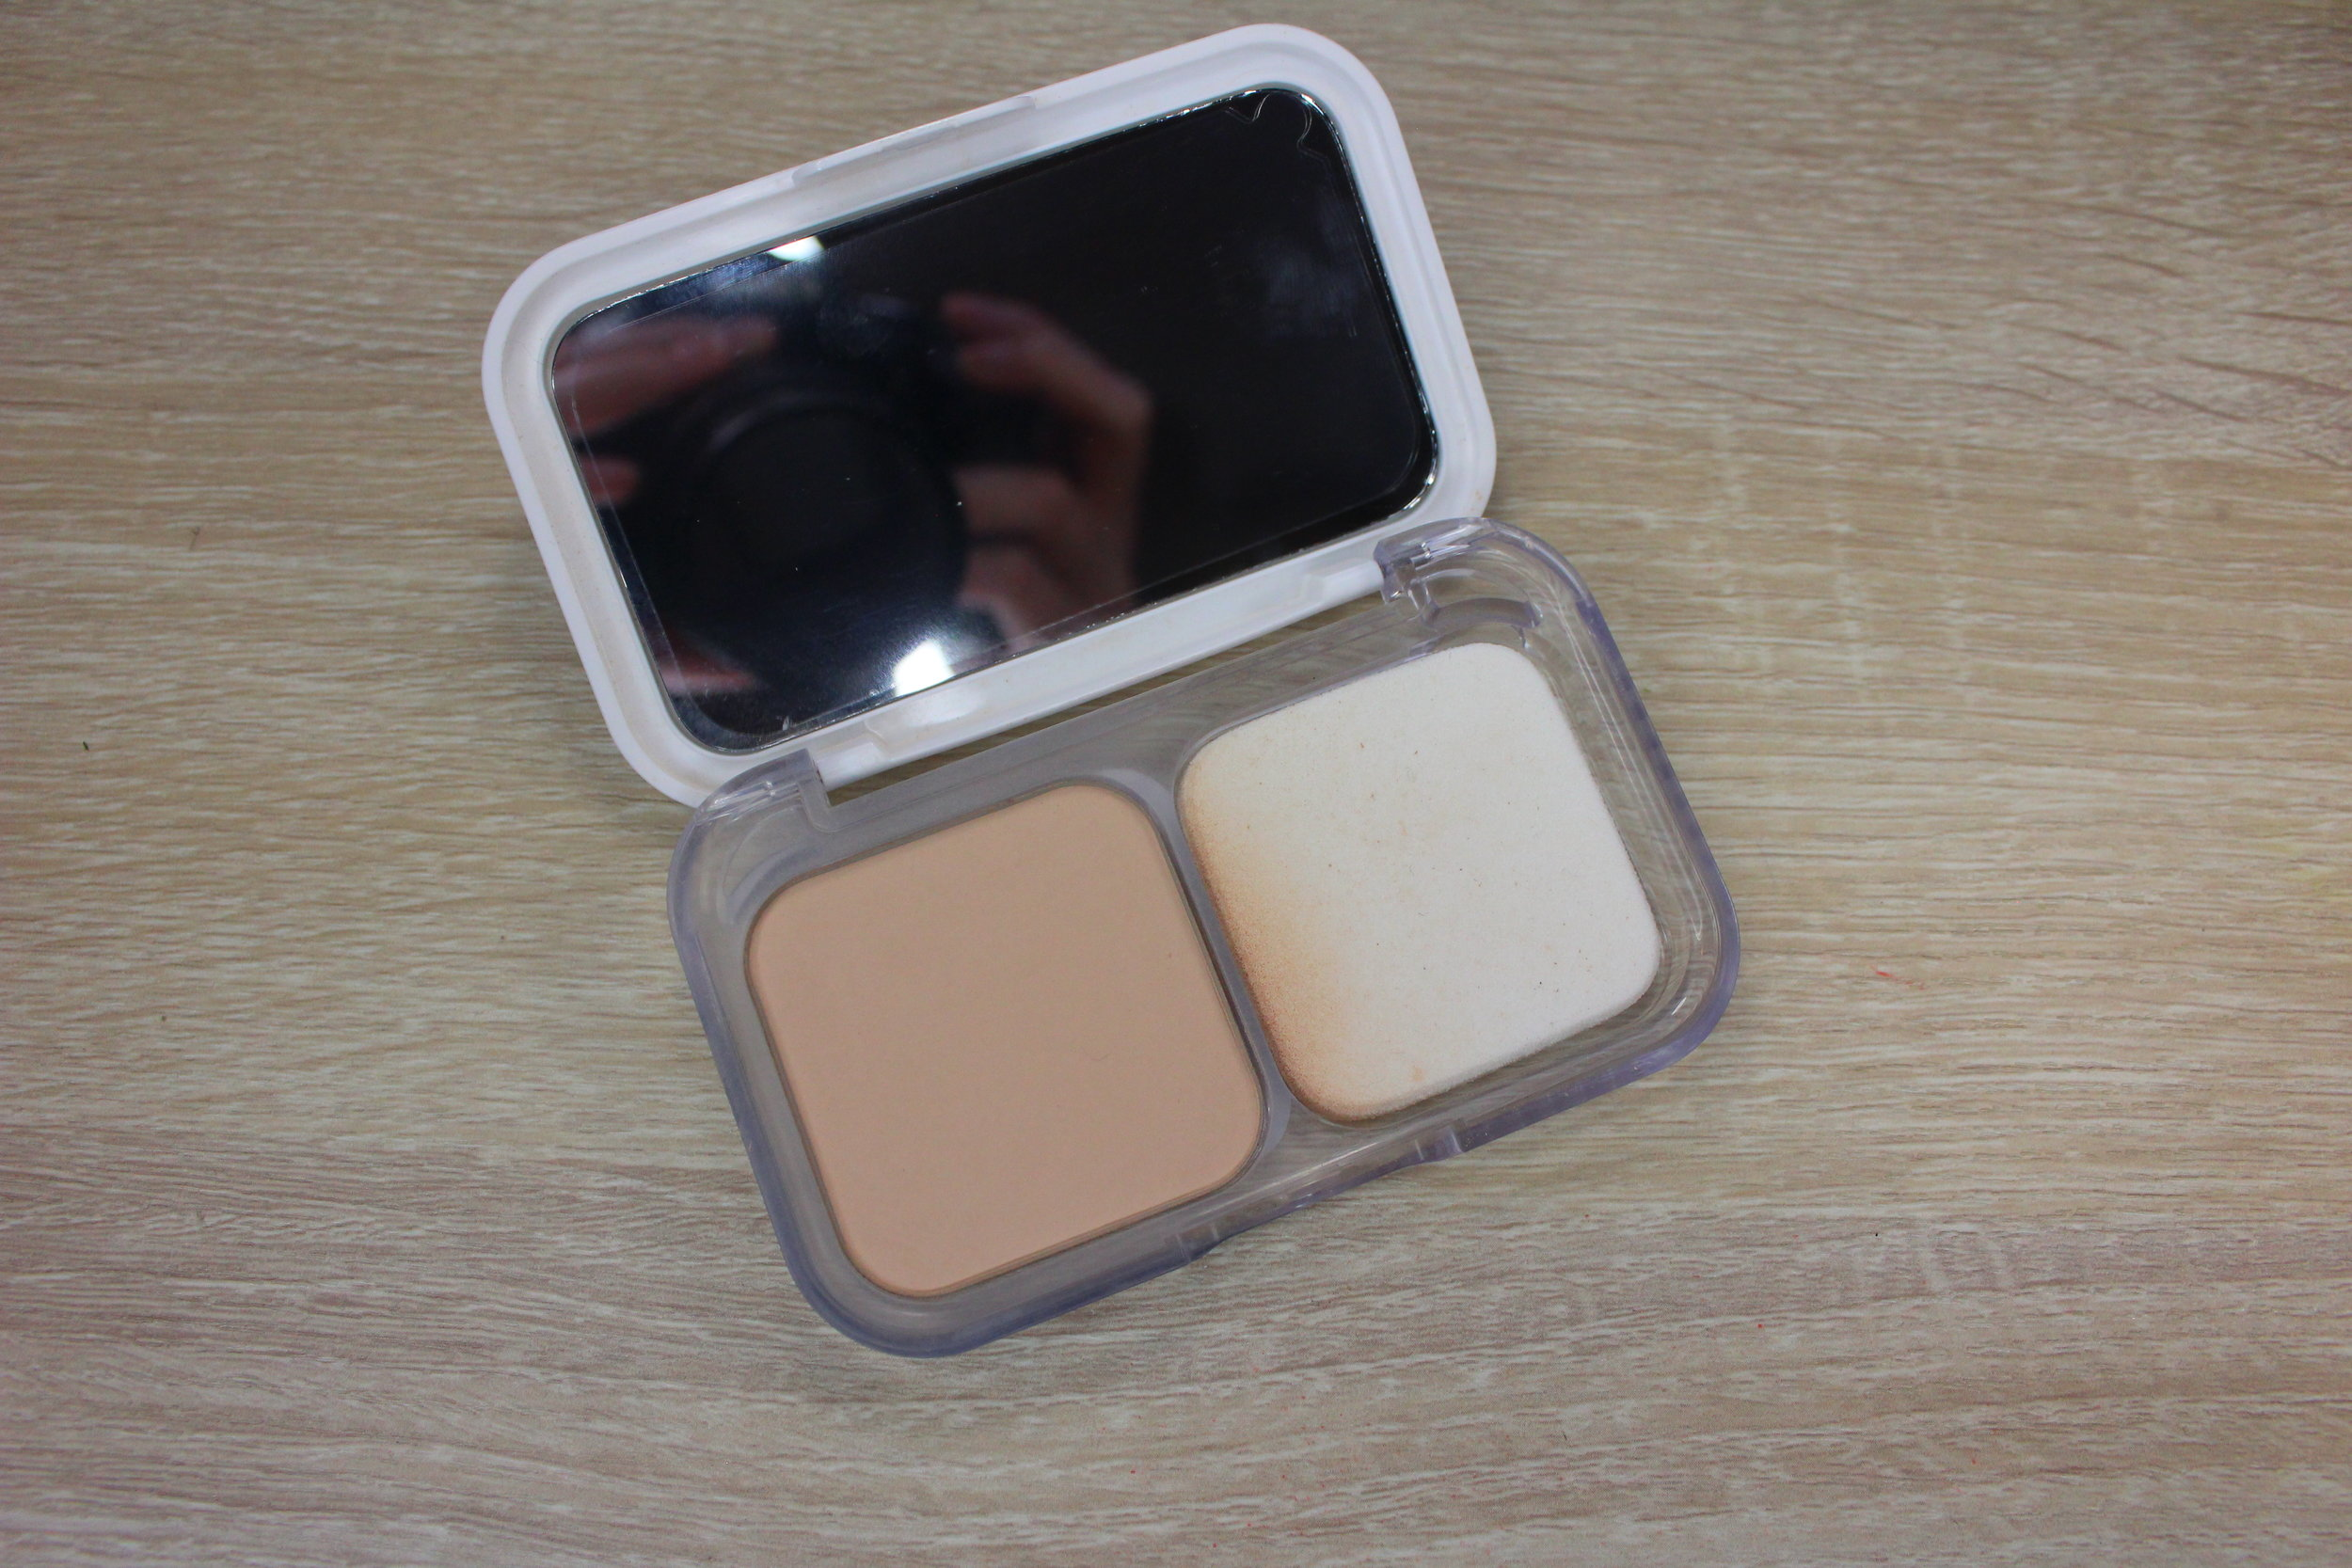 Beauty favorites - Maybelline Better Skin pressed powder